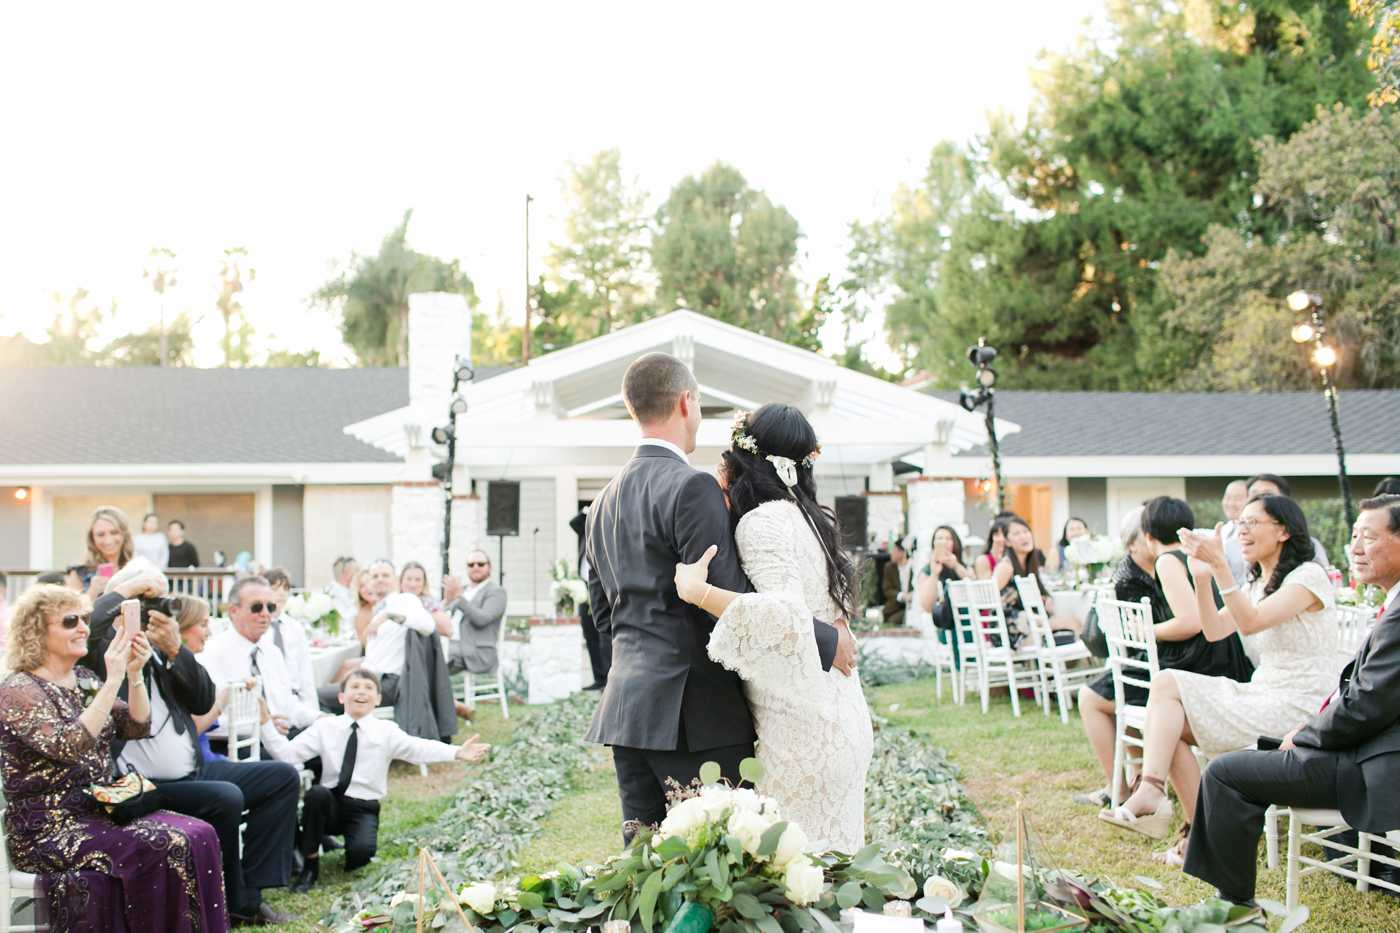 12 Tips for a Fun & Affordable Backyard Barbecue Wedding Reception